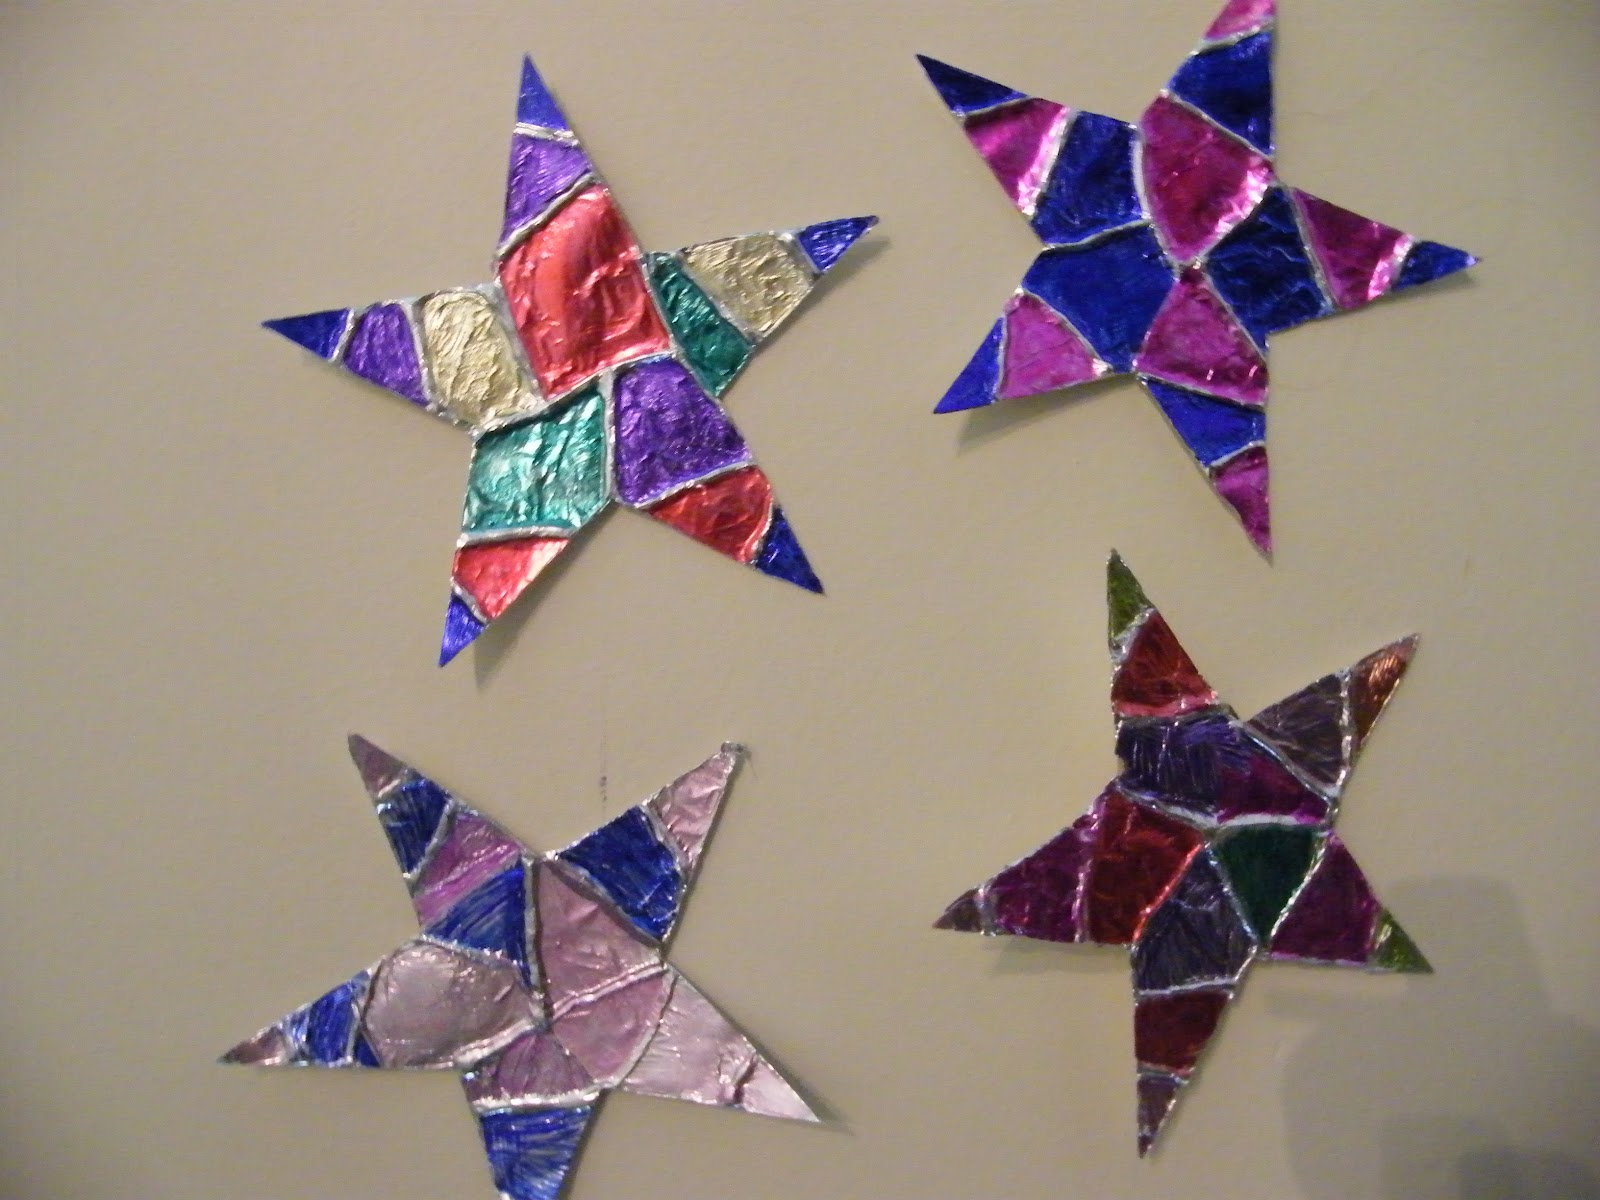 Five Easy Preschool Star Crafts That Will Bring a Shine to ... |Star Art Projects For Preschoolers